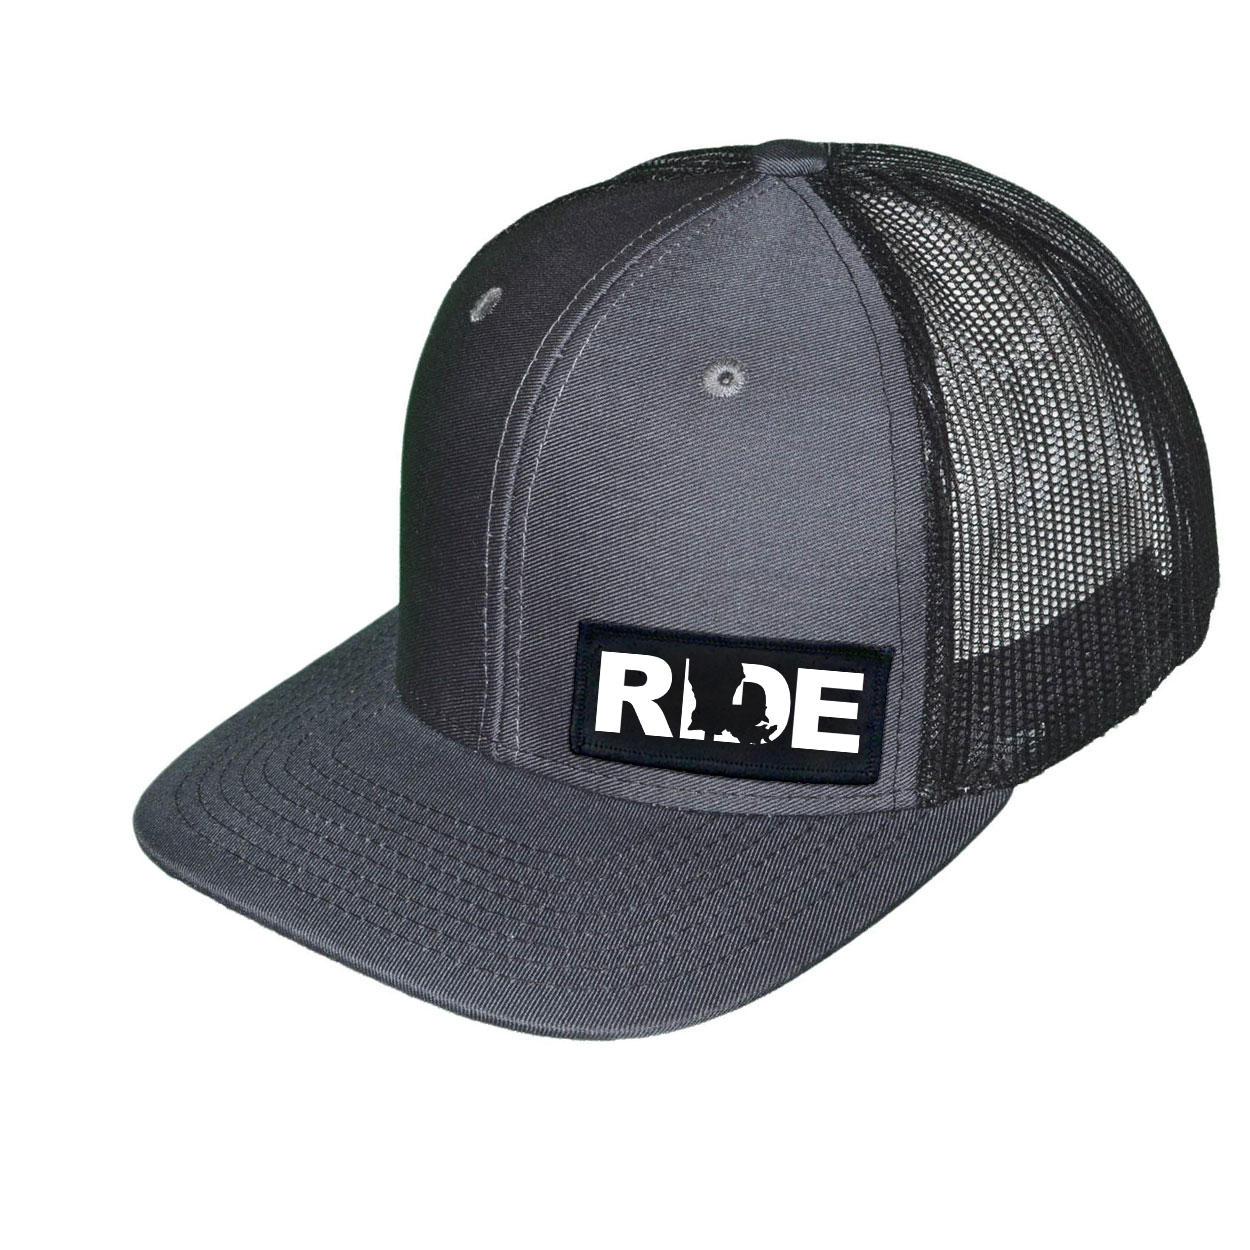 Ride Louisiana Night Out Woven Patch Snapback Trucker Hat Dark Gray/Black (White Logo)